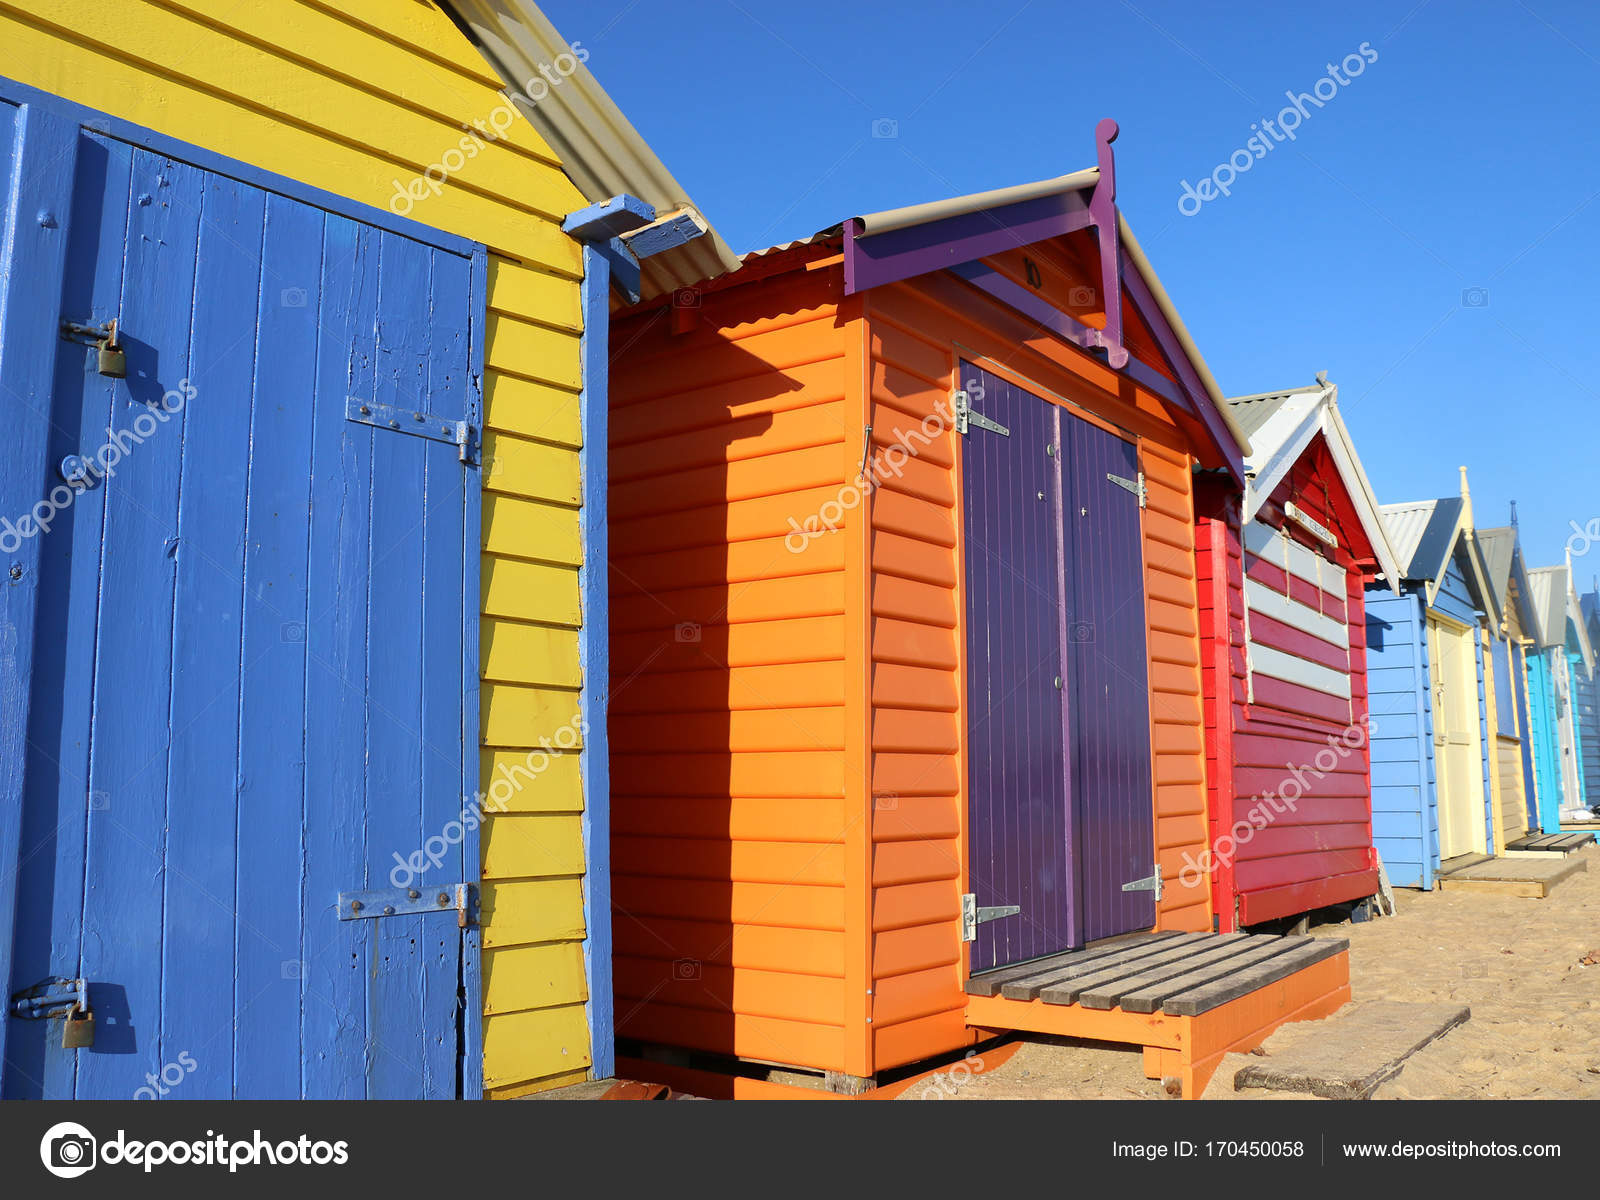 The Colourful Bathing Boxes Of Dendy Street Beach Brighton Have